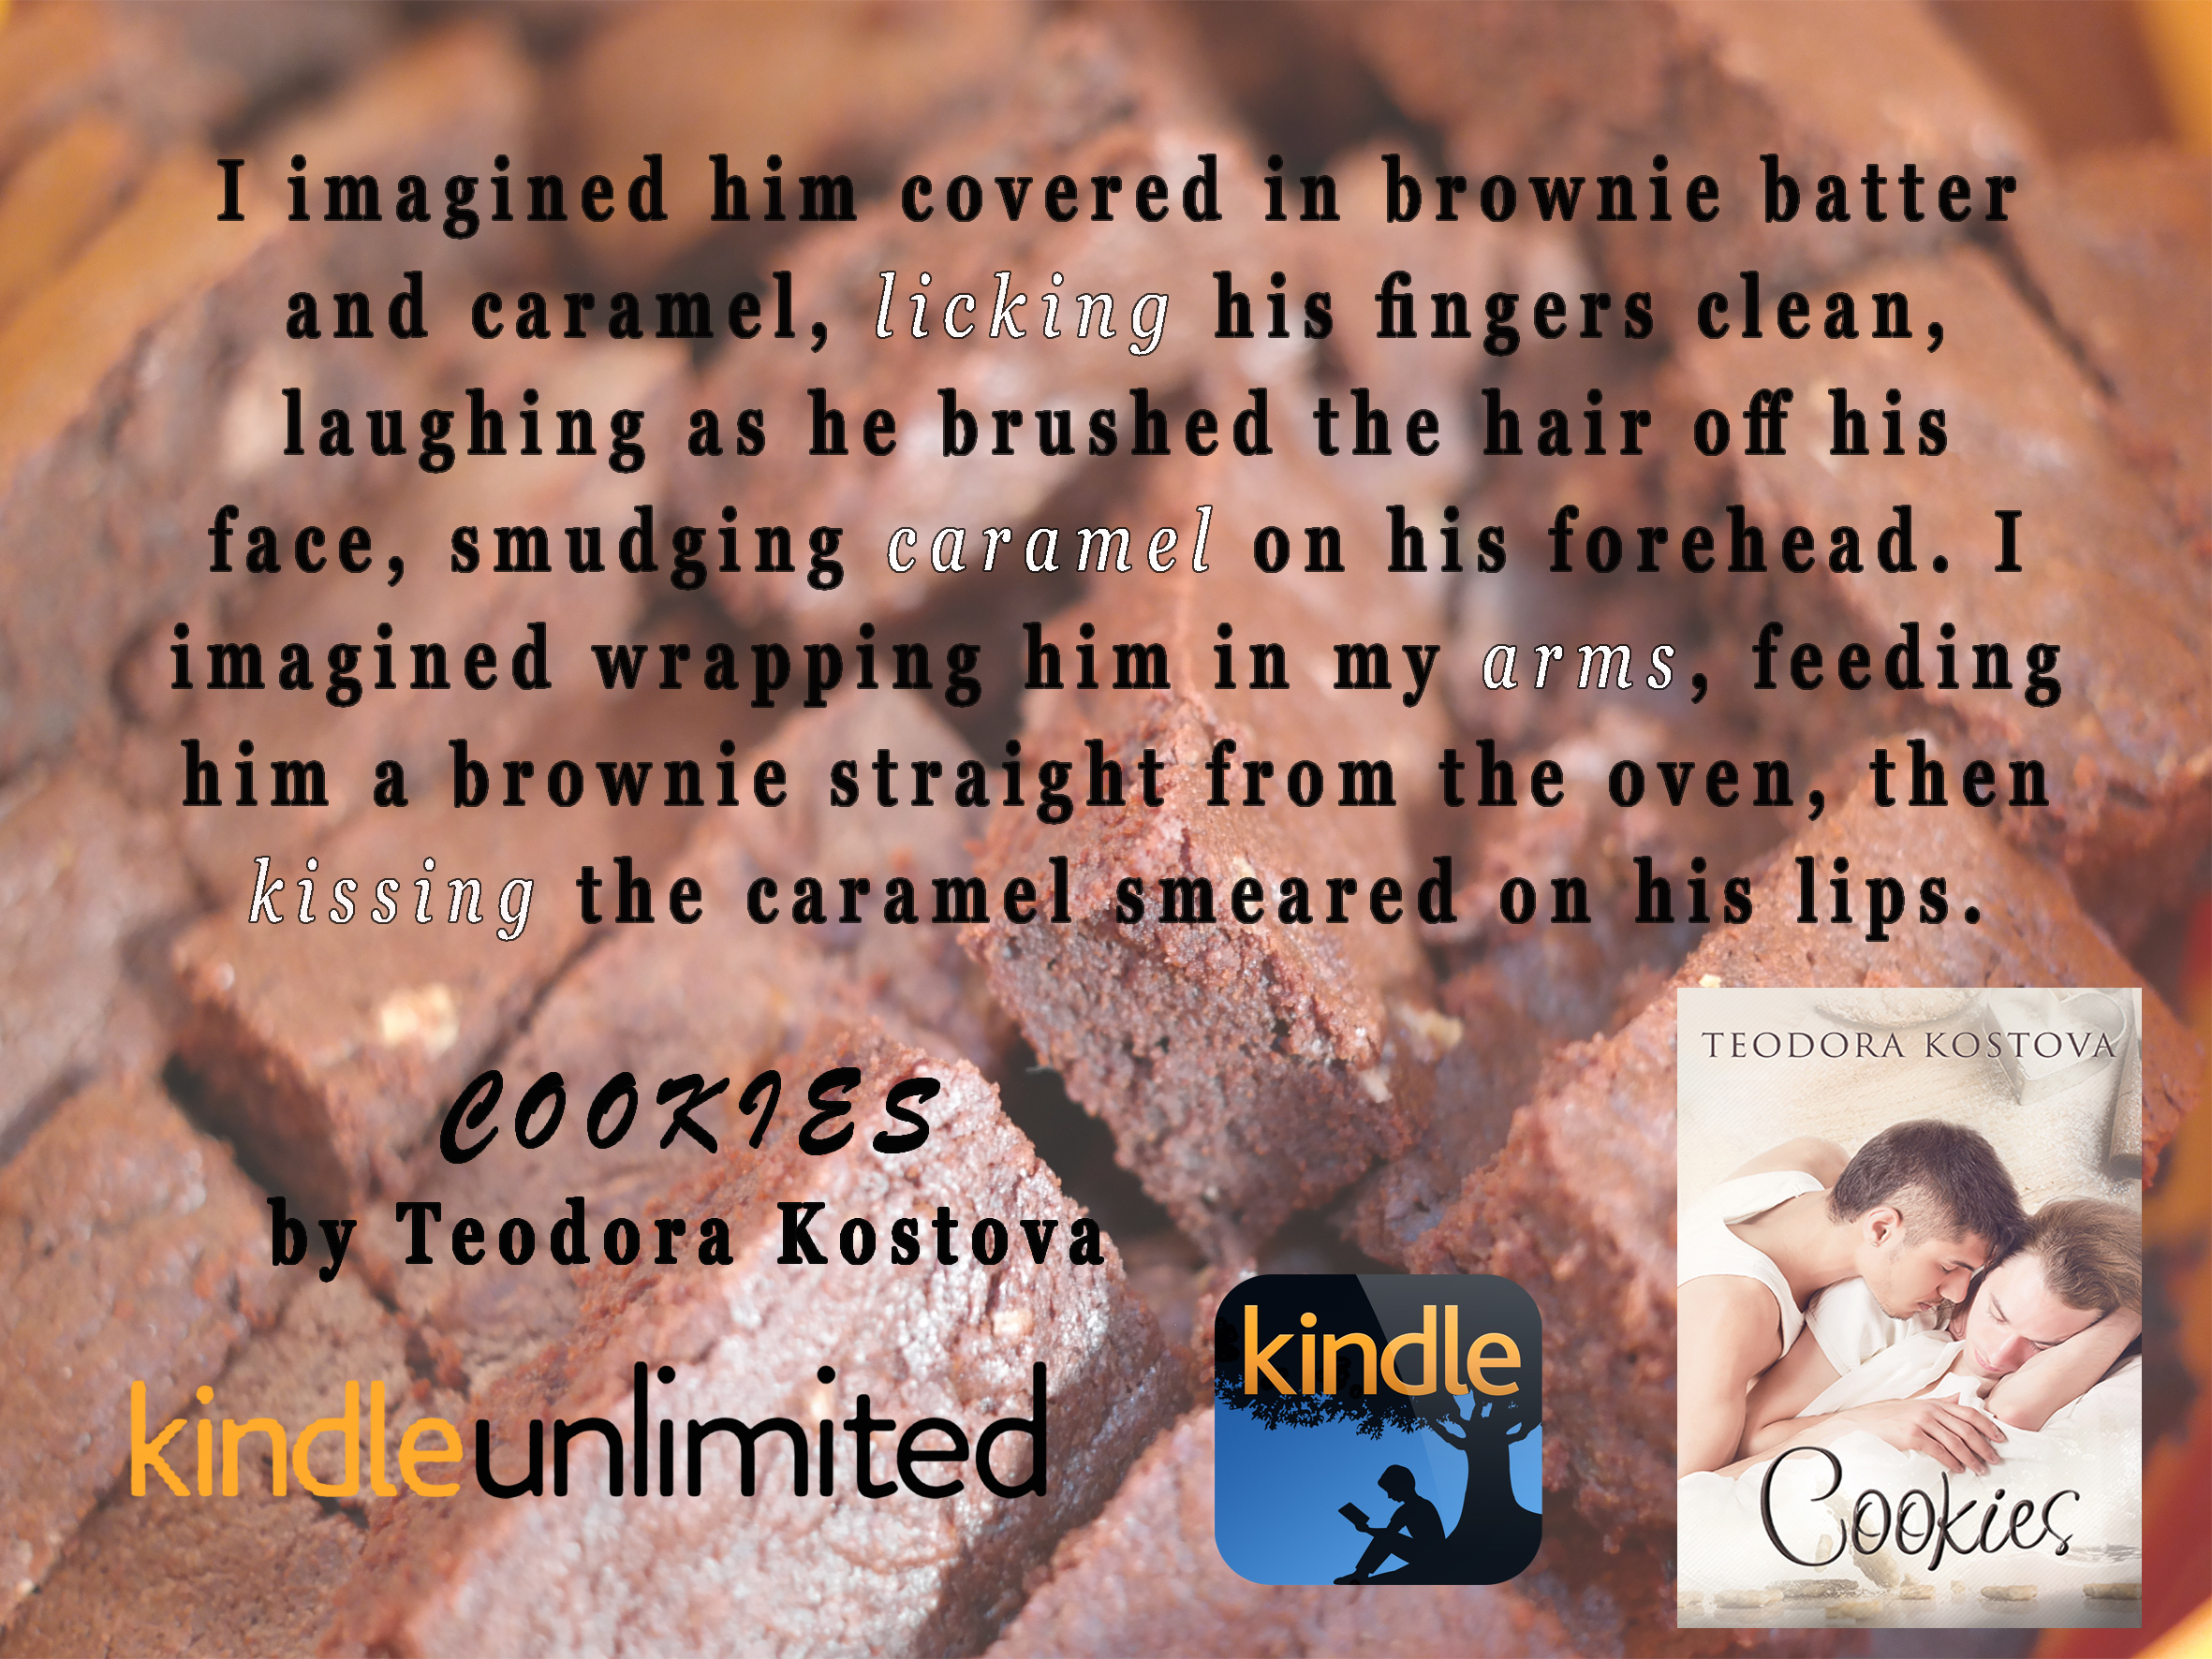 BOOK BLAST: Cookies by Teodora Kostova